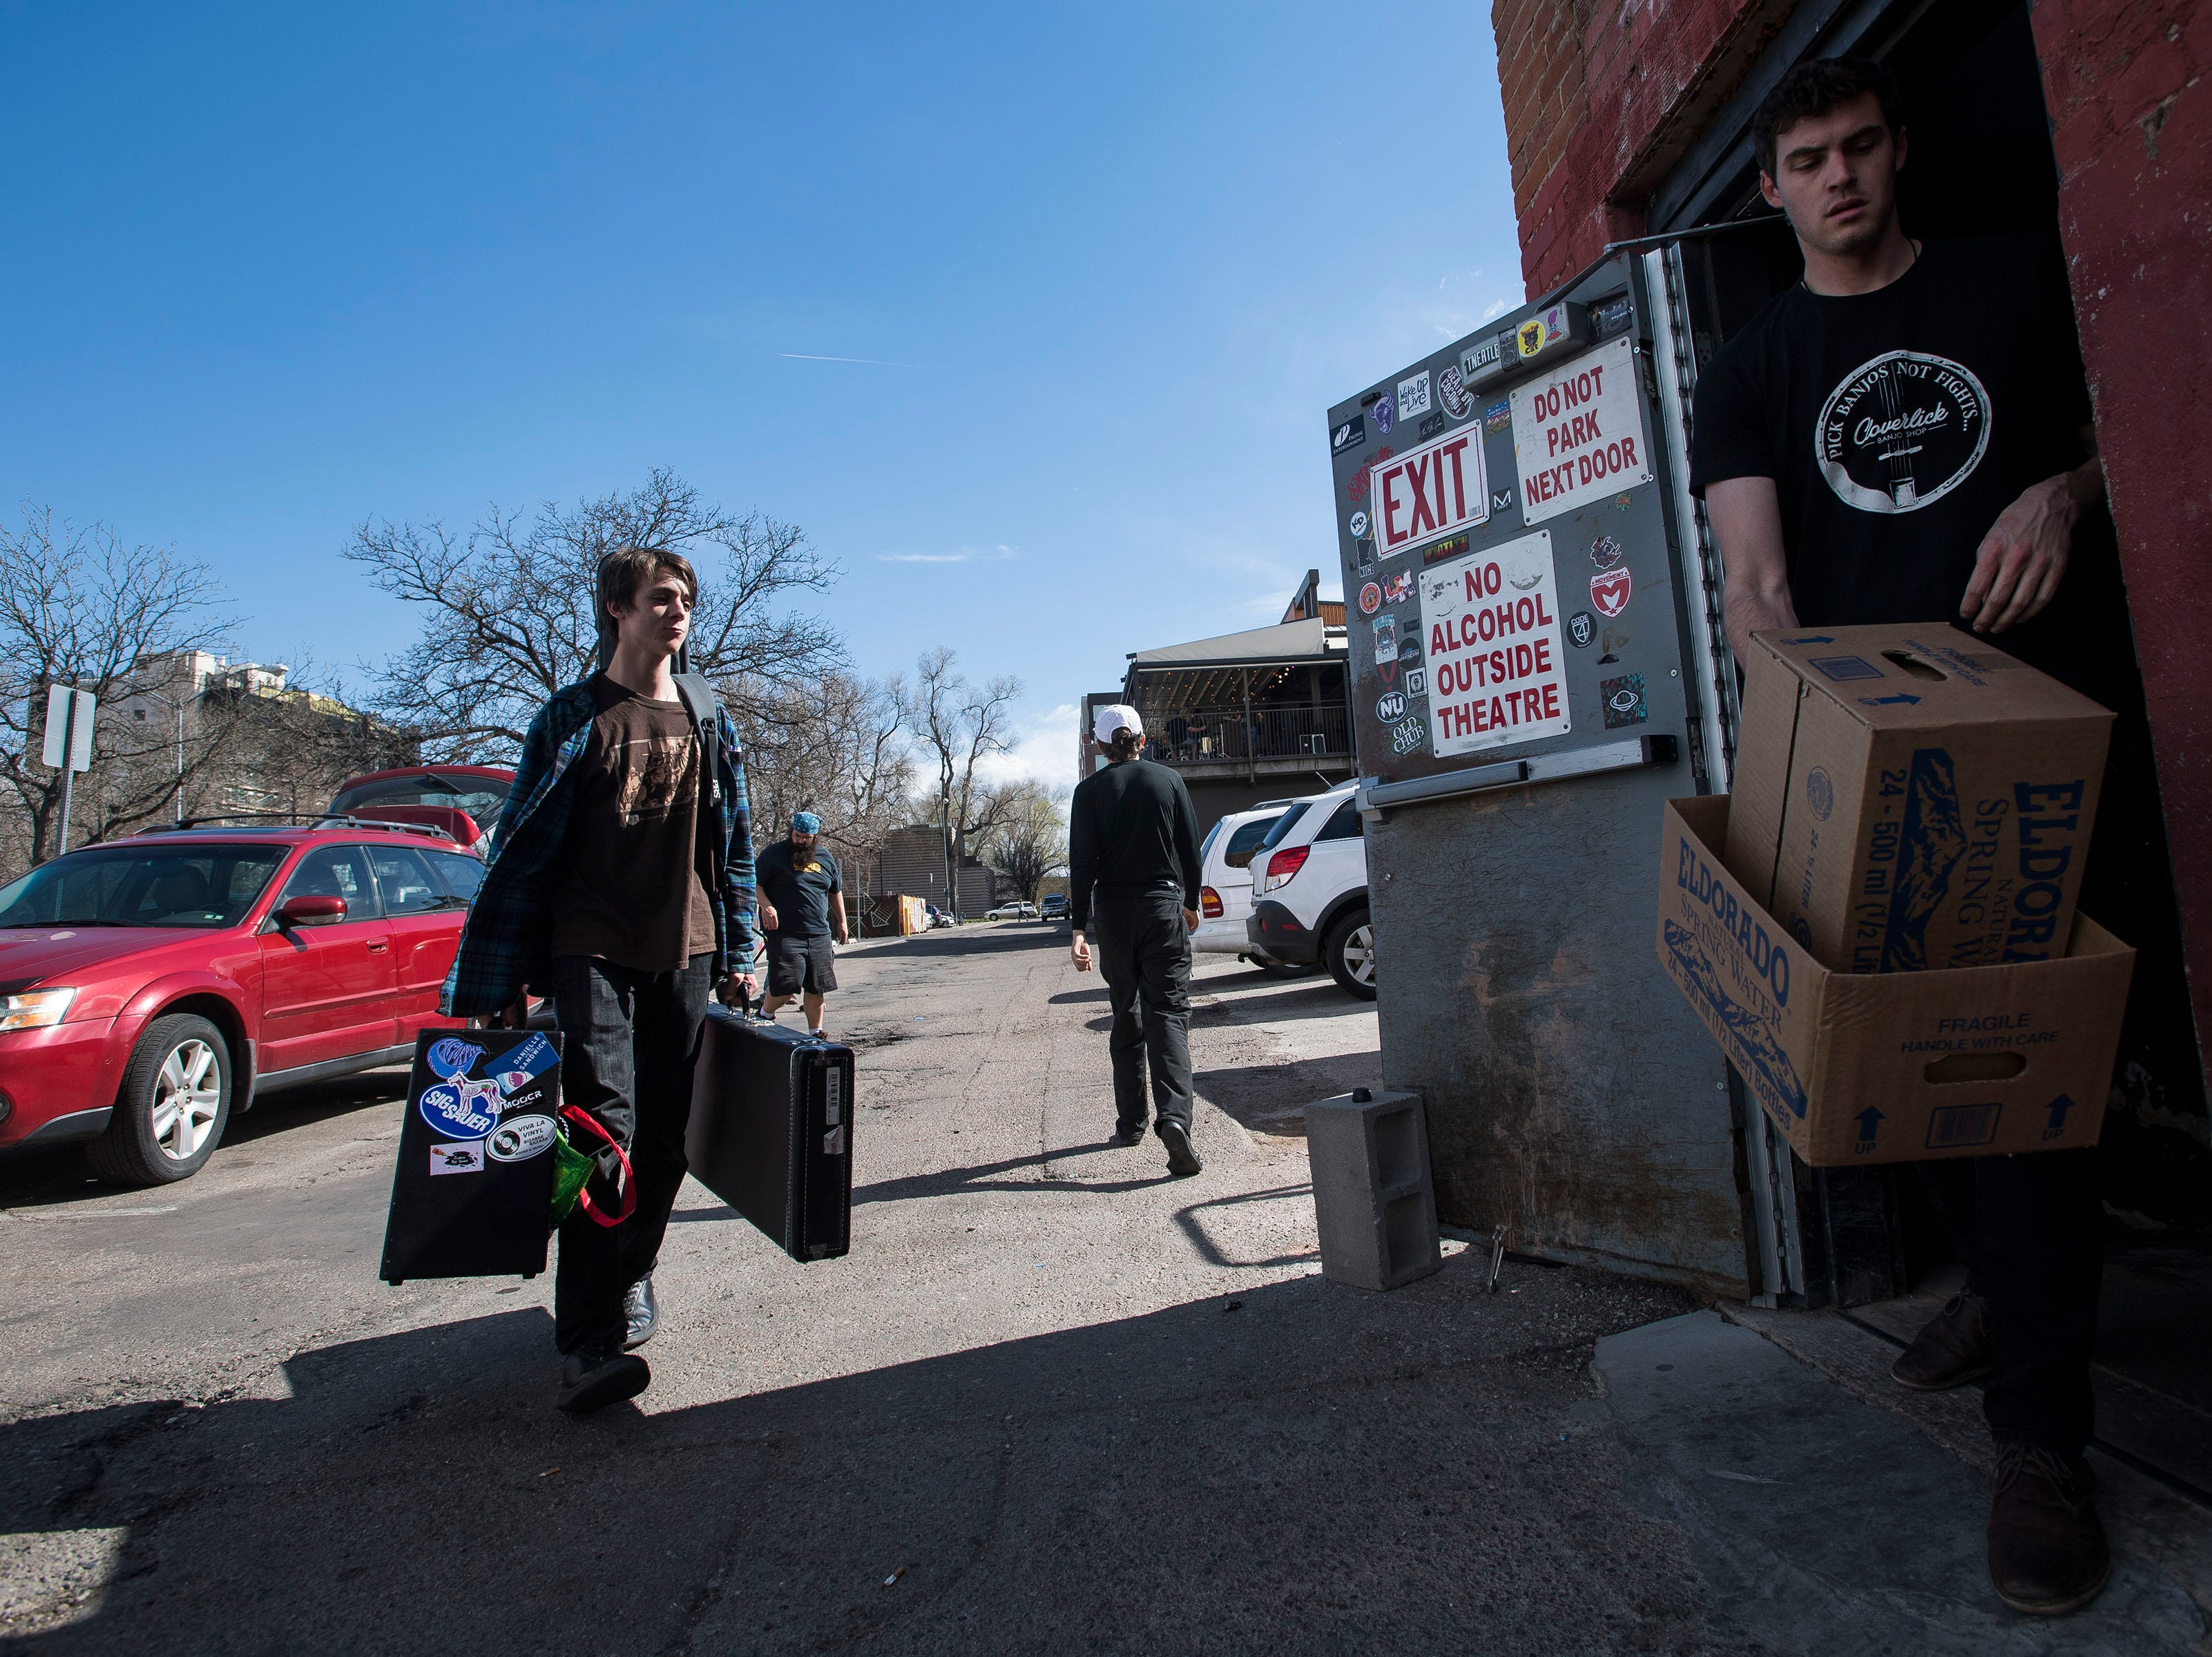 My Dog Ate Chad band member Nico Cutbirth carries a guitar and amp into The Aggie Theatre while production manager Will Reutemann tosses a few boxes out the back door during the FoCoMX XI music festival on Friday, April 26, 2019, in Fort Collins, Colo.